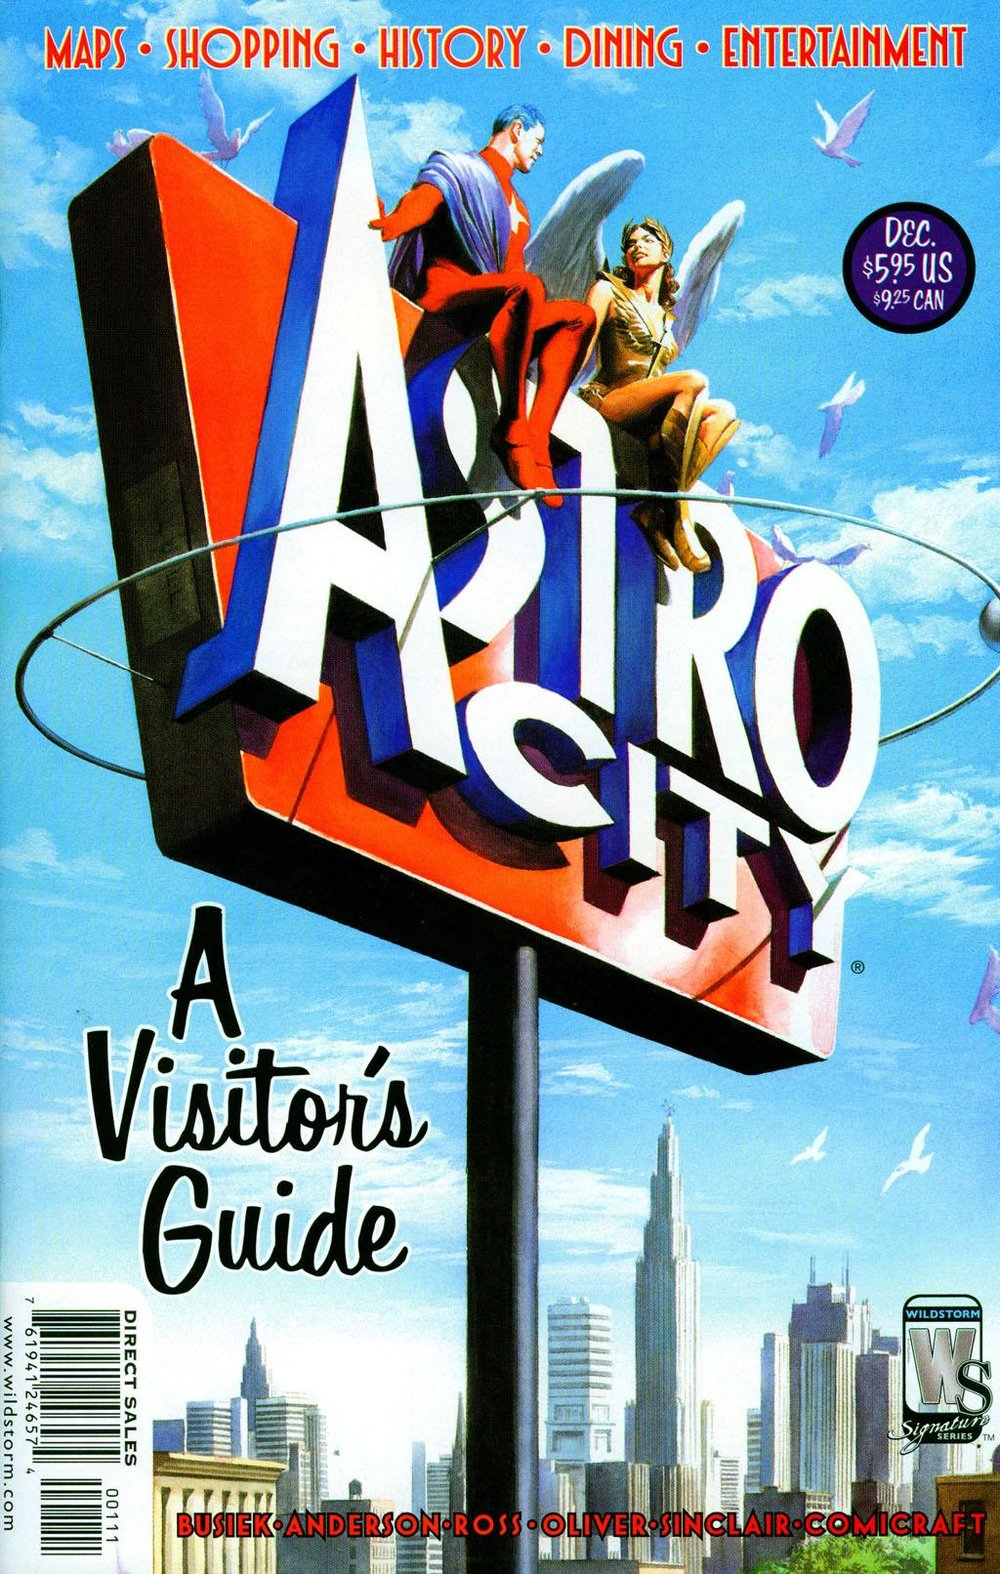 Astro City - A Visitors Guide (cover painting).jpg